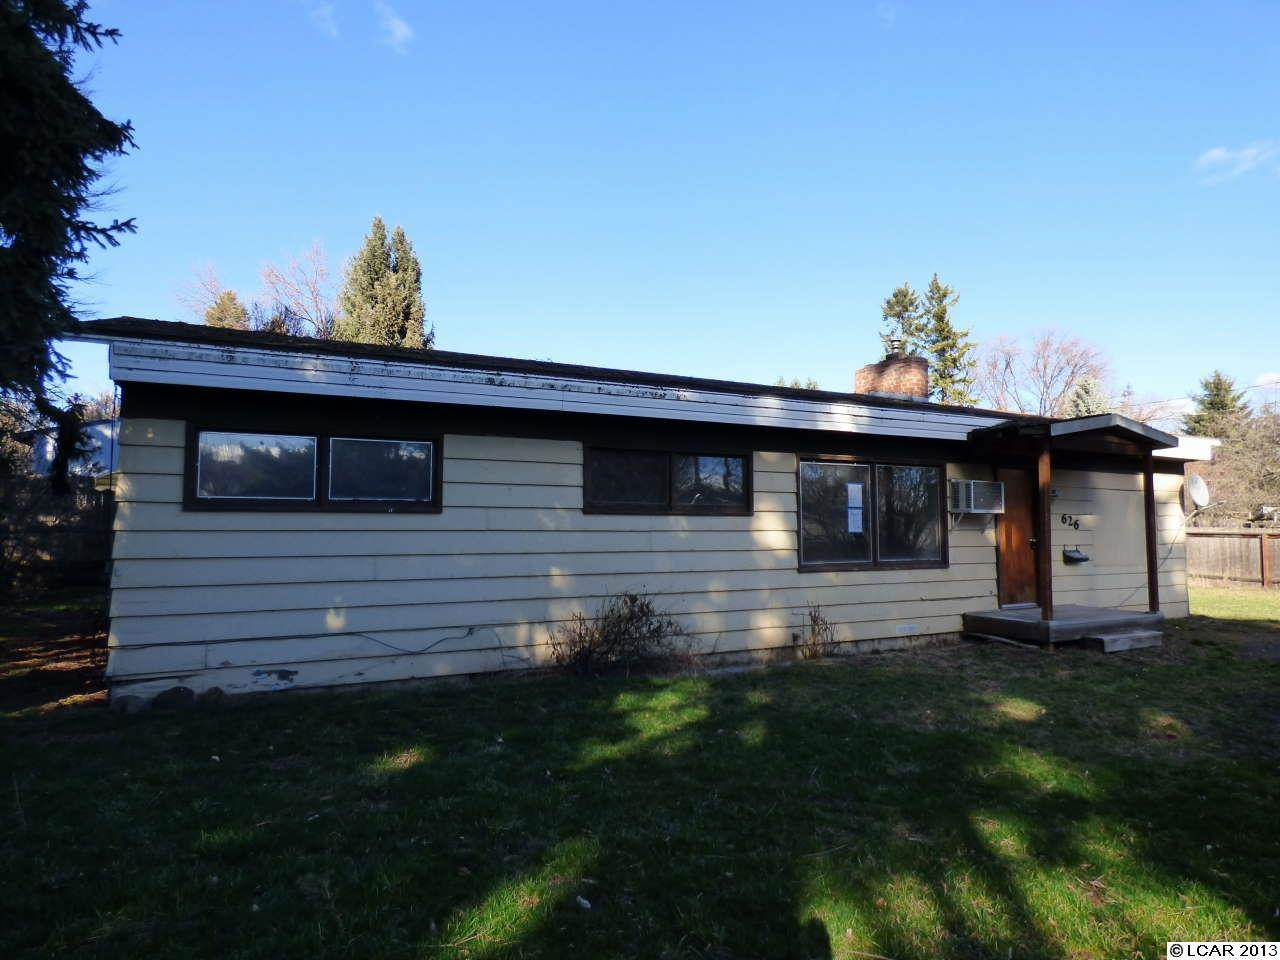 Real Estate for Sale, ListingId: 32302296, Moscow,ID83843